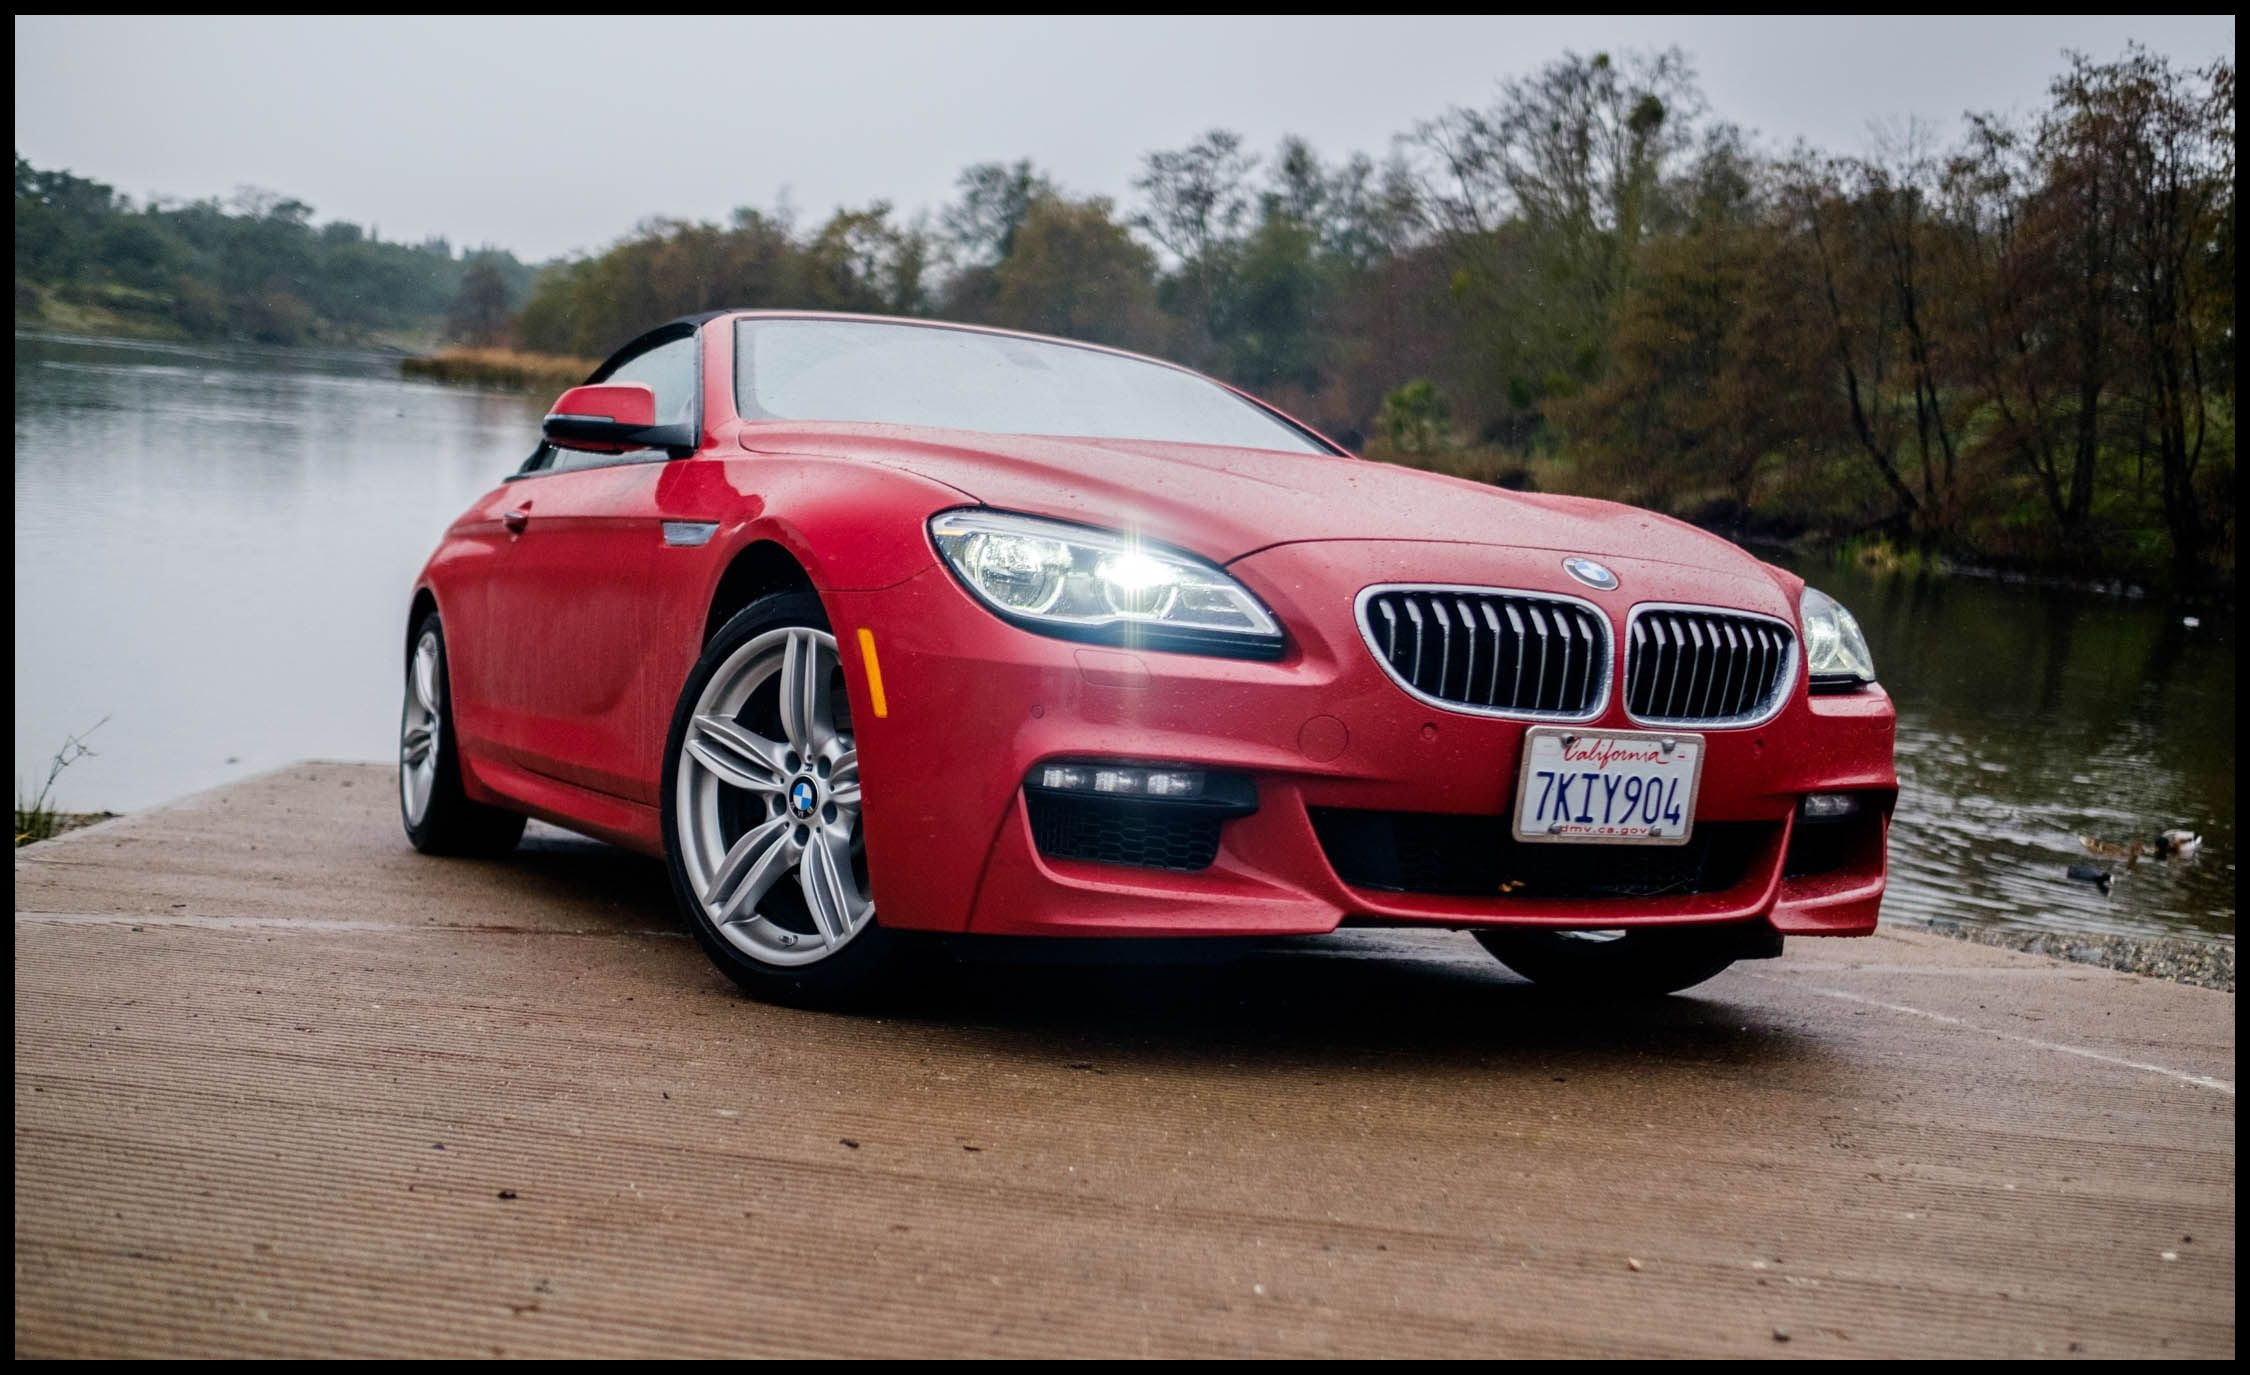 2006 Bmw 640i Lovely Bmw 6 Series Reviews Bmw 6 Series Price S and Specs